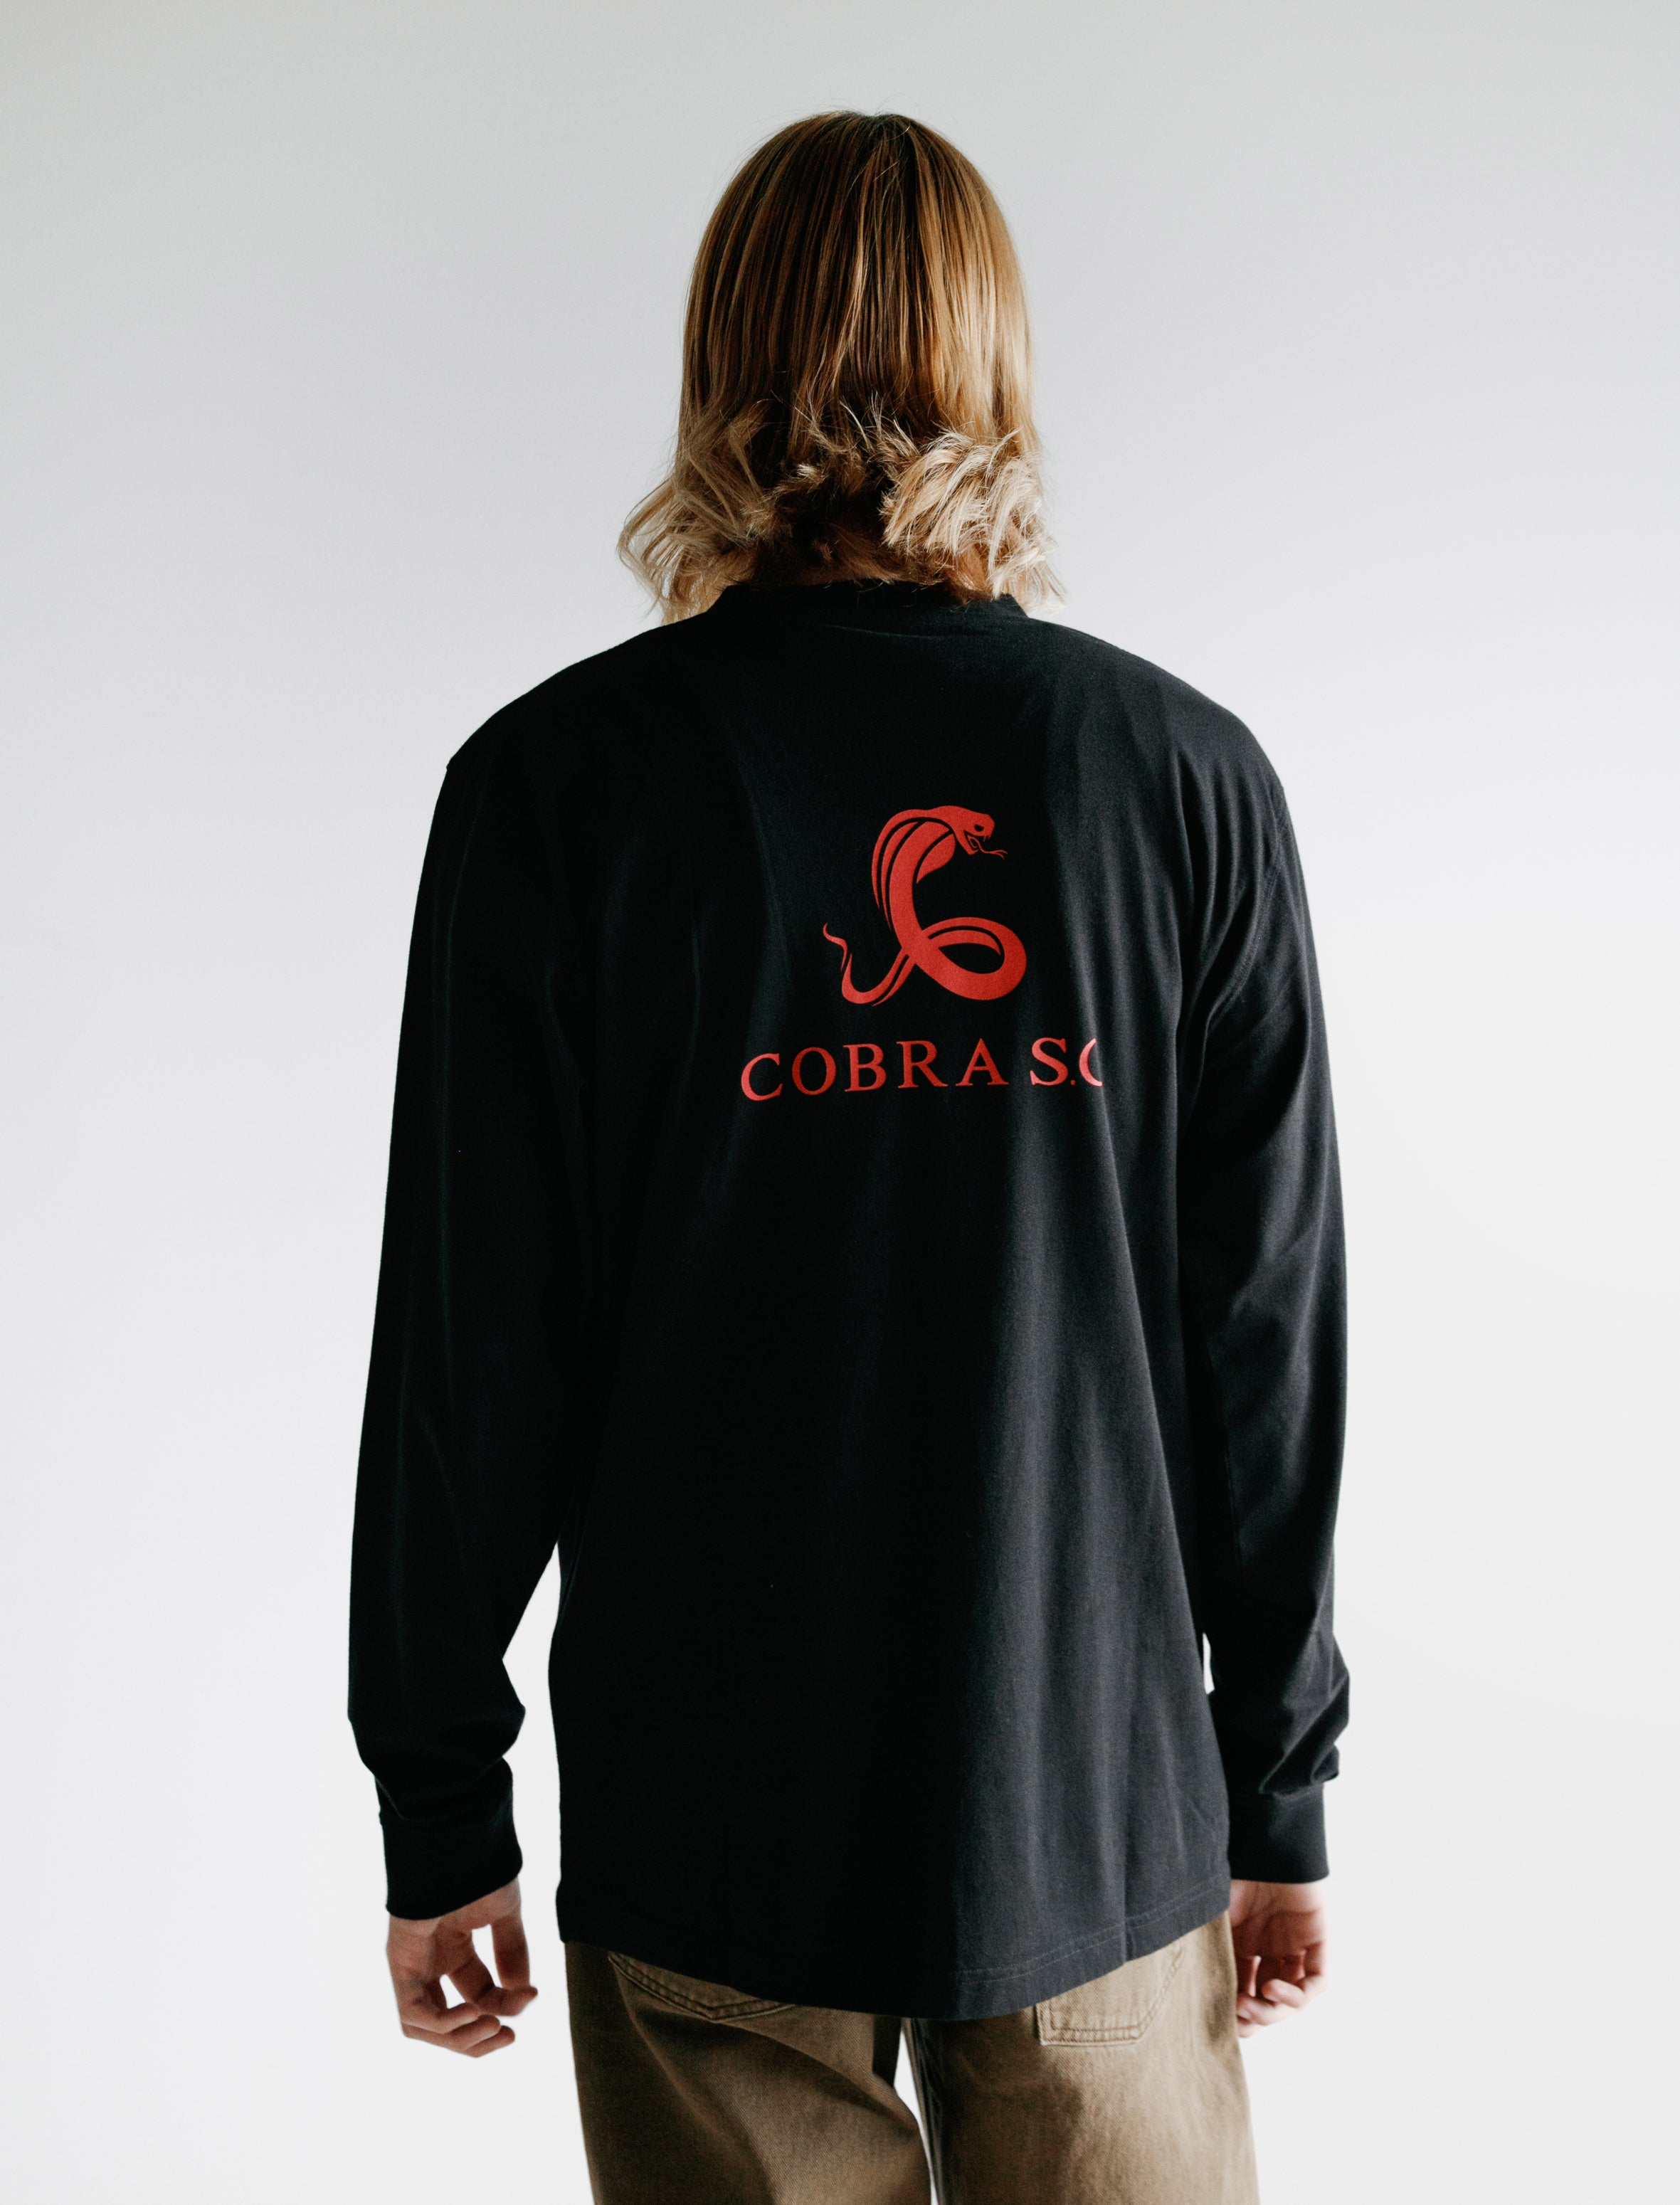 Cobra S.C. Long Sleeve T-Shirt Black Jersey